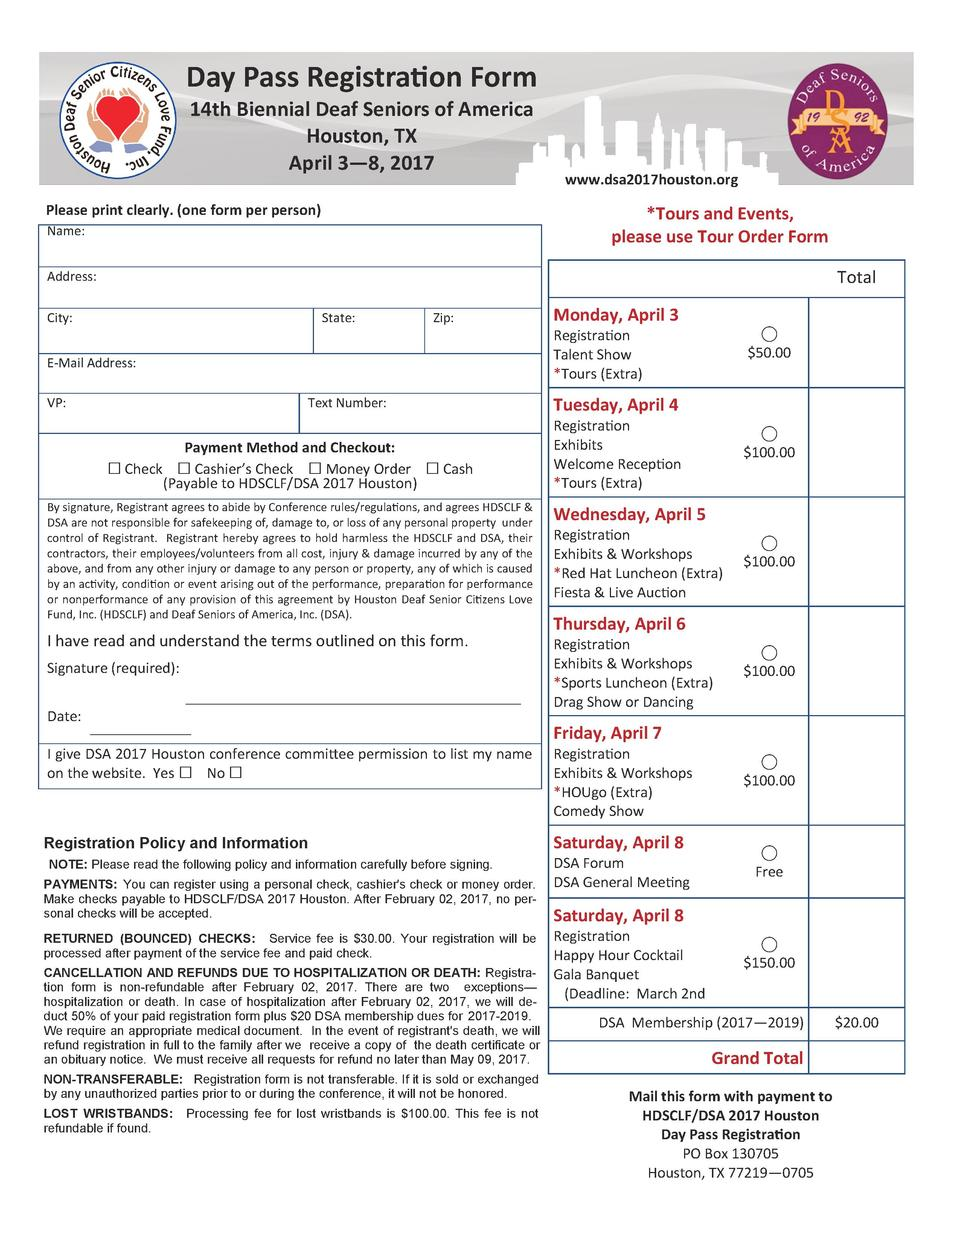 Day Pass Registration Form 14th Biennial Deaf Seniors of America Houston, TX April 3   8, 2017  Please print clearly.  one...